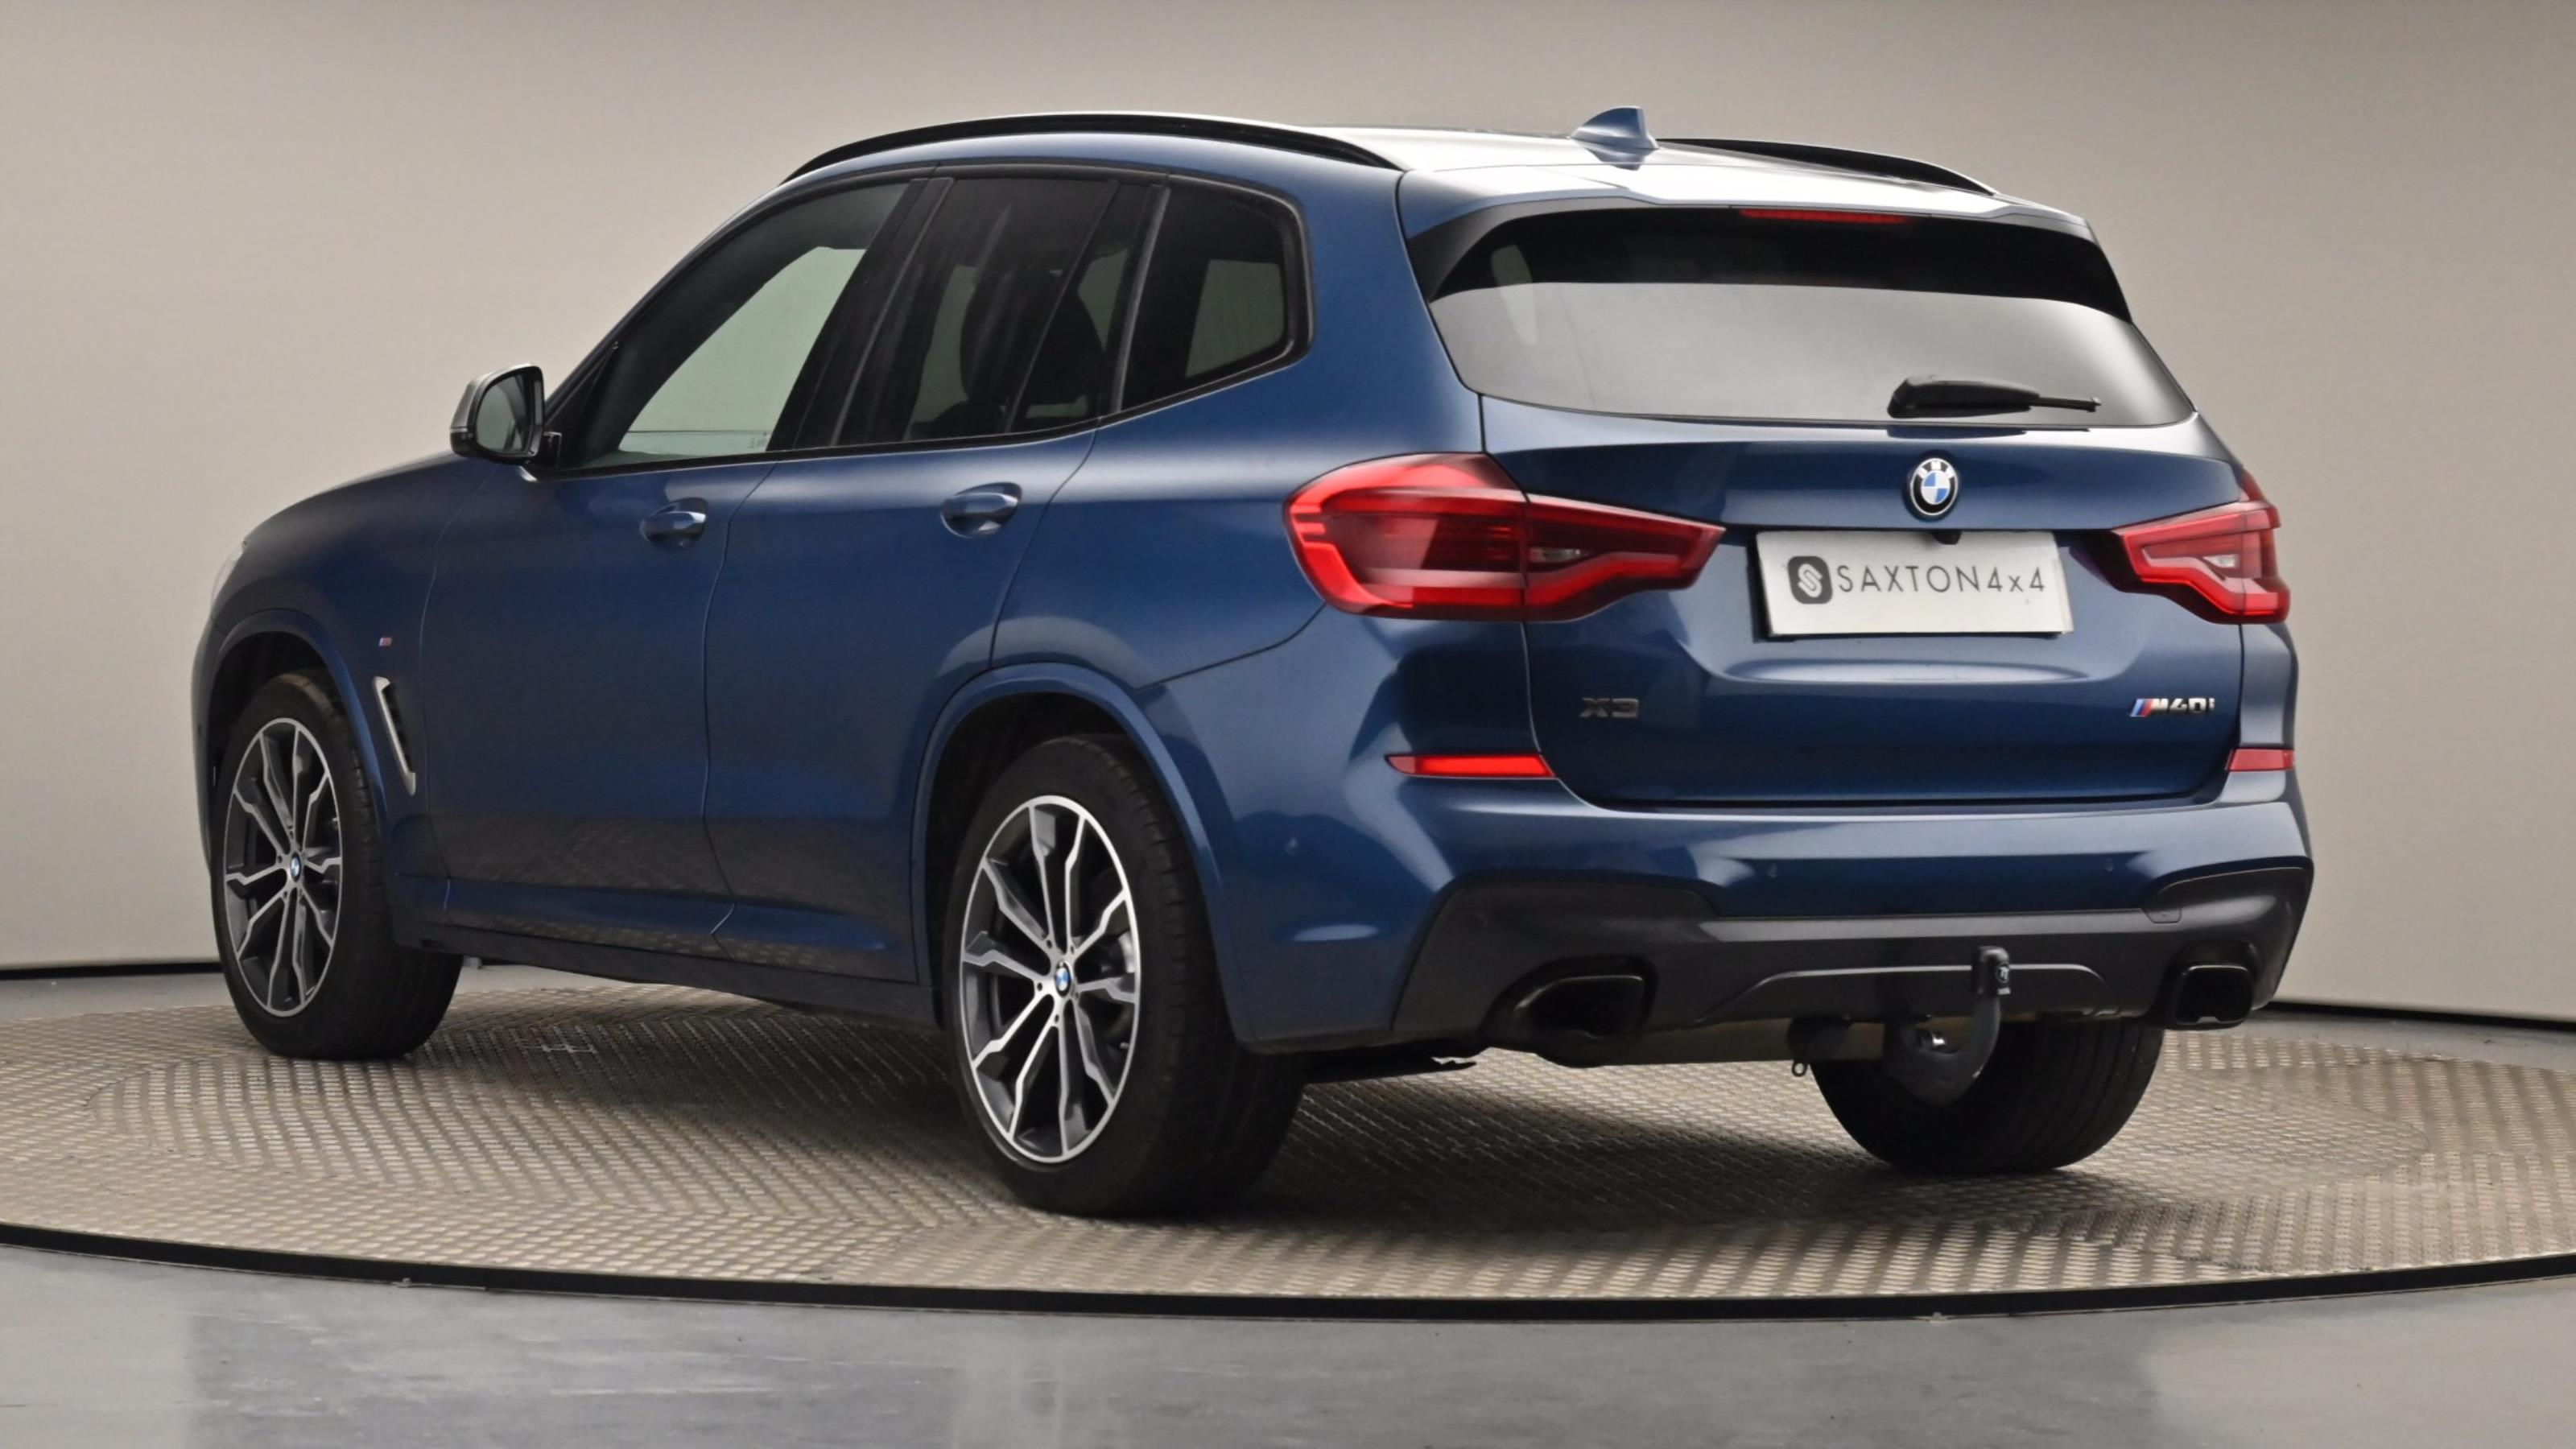 Used 2019 BMW X3 xDrive M40i [354] 5dr Step Auto BLUE at Saxton4x4